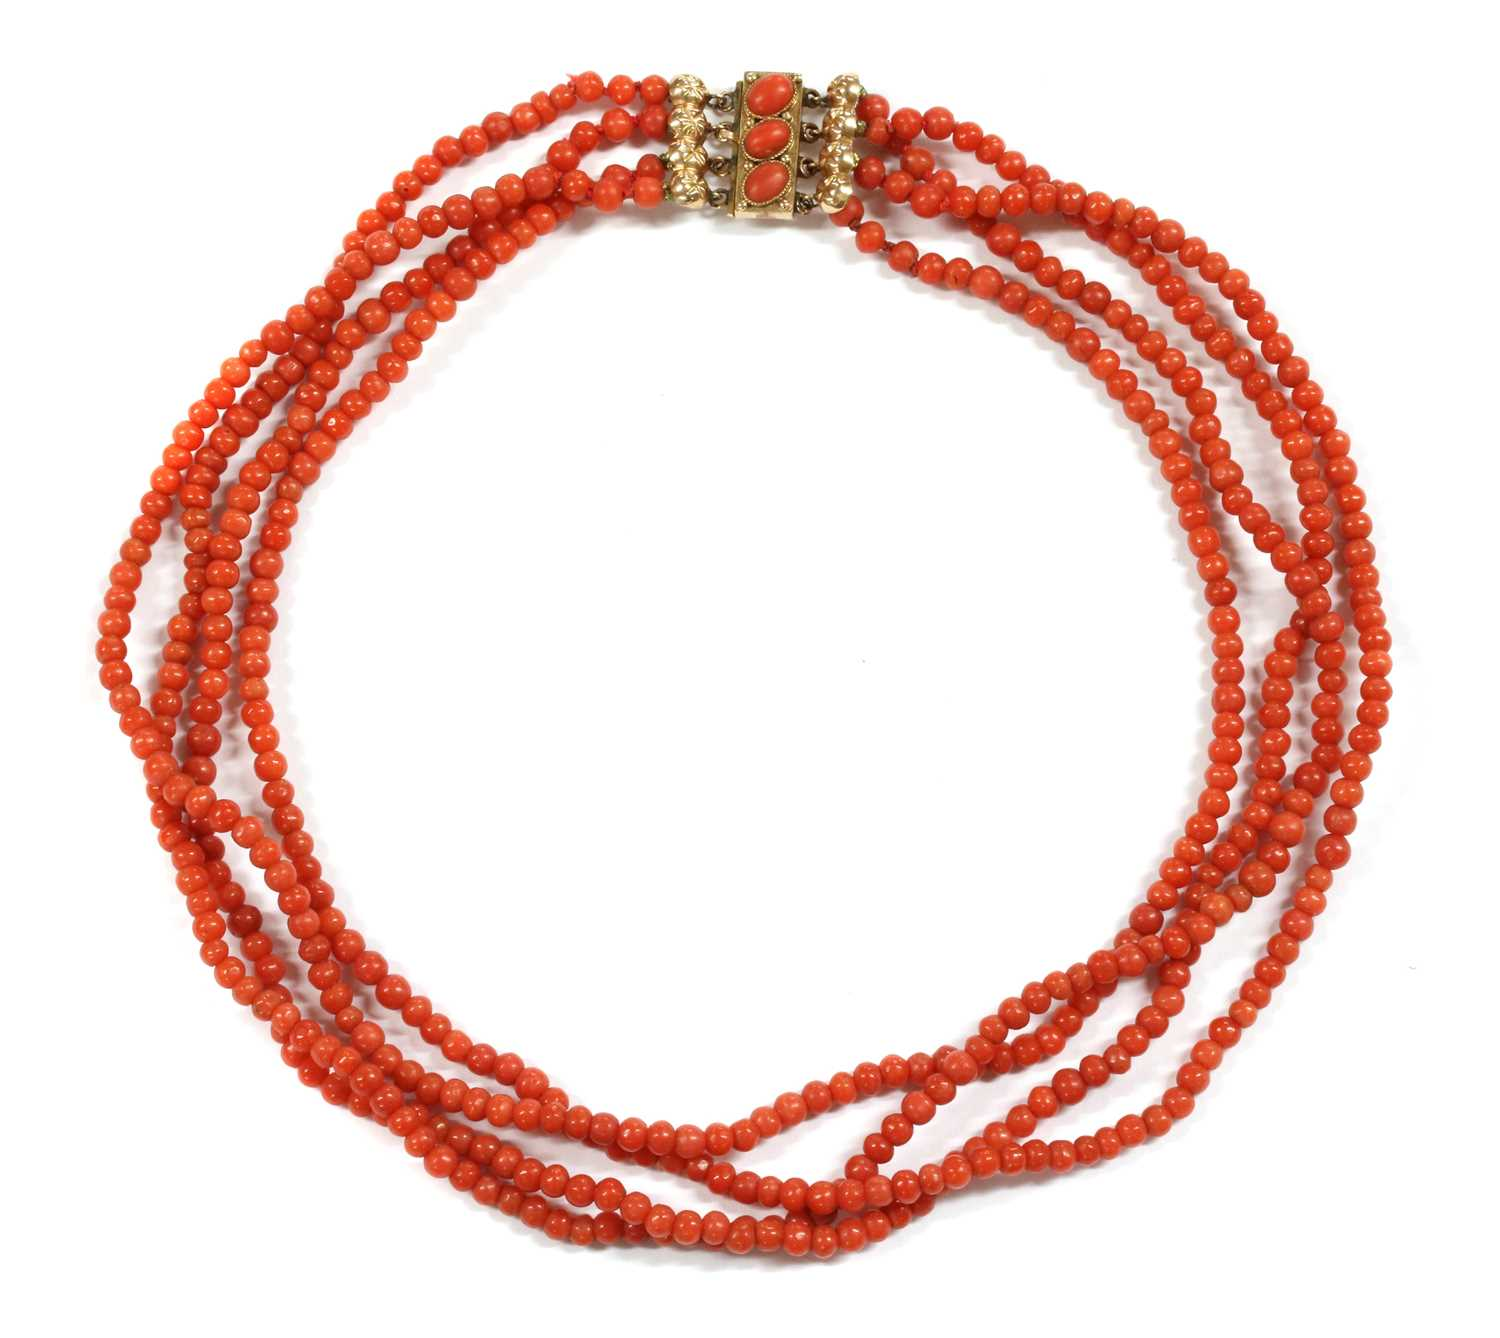 Lot 21 - A four row uniform coral bead necklace